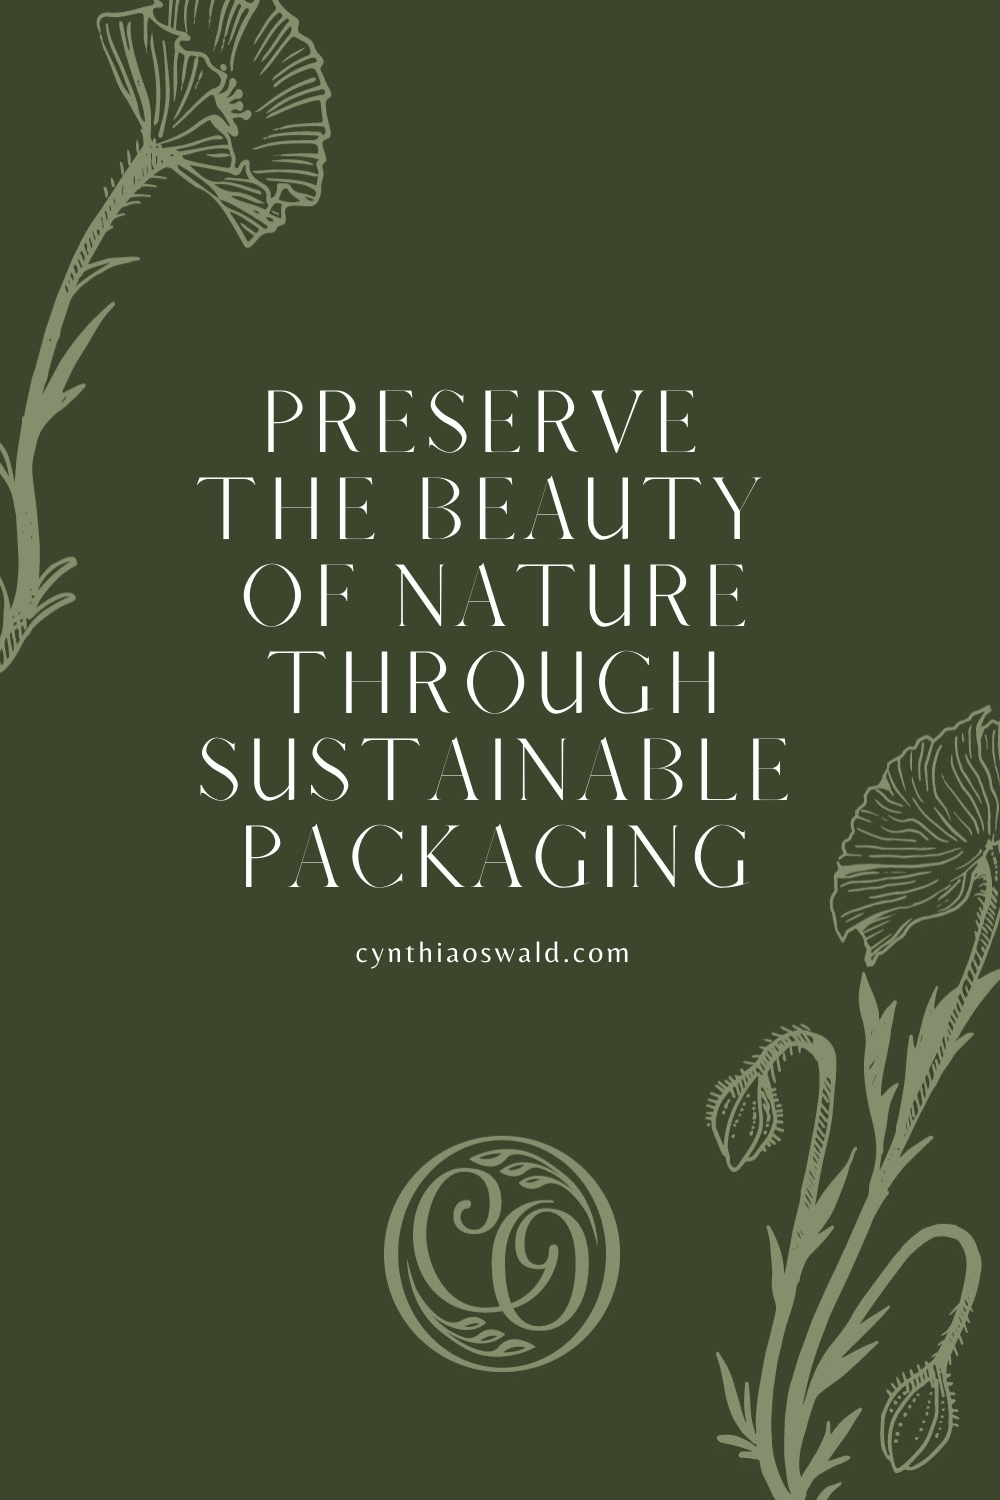 Preserve the beauty of nature through sustainable packaging